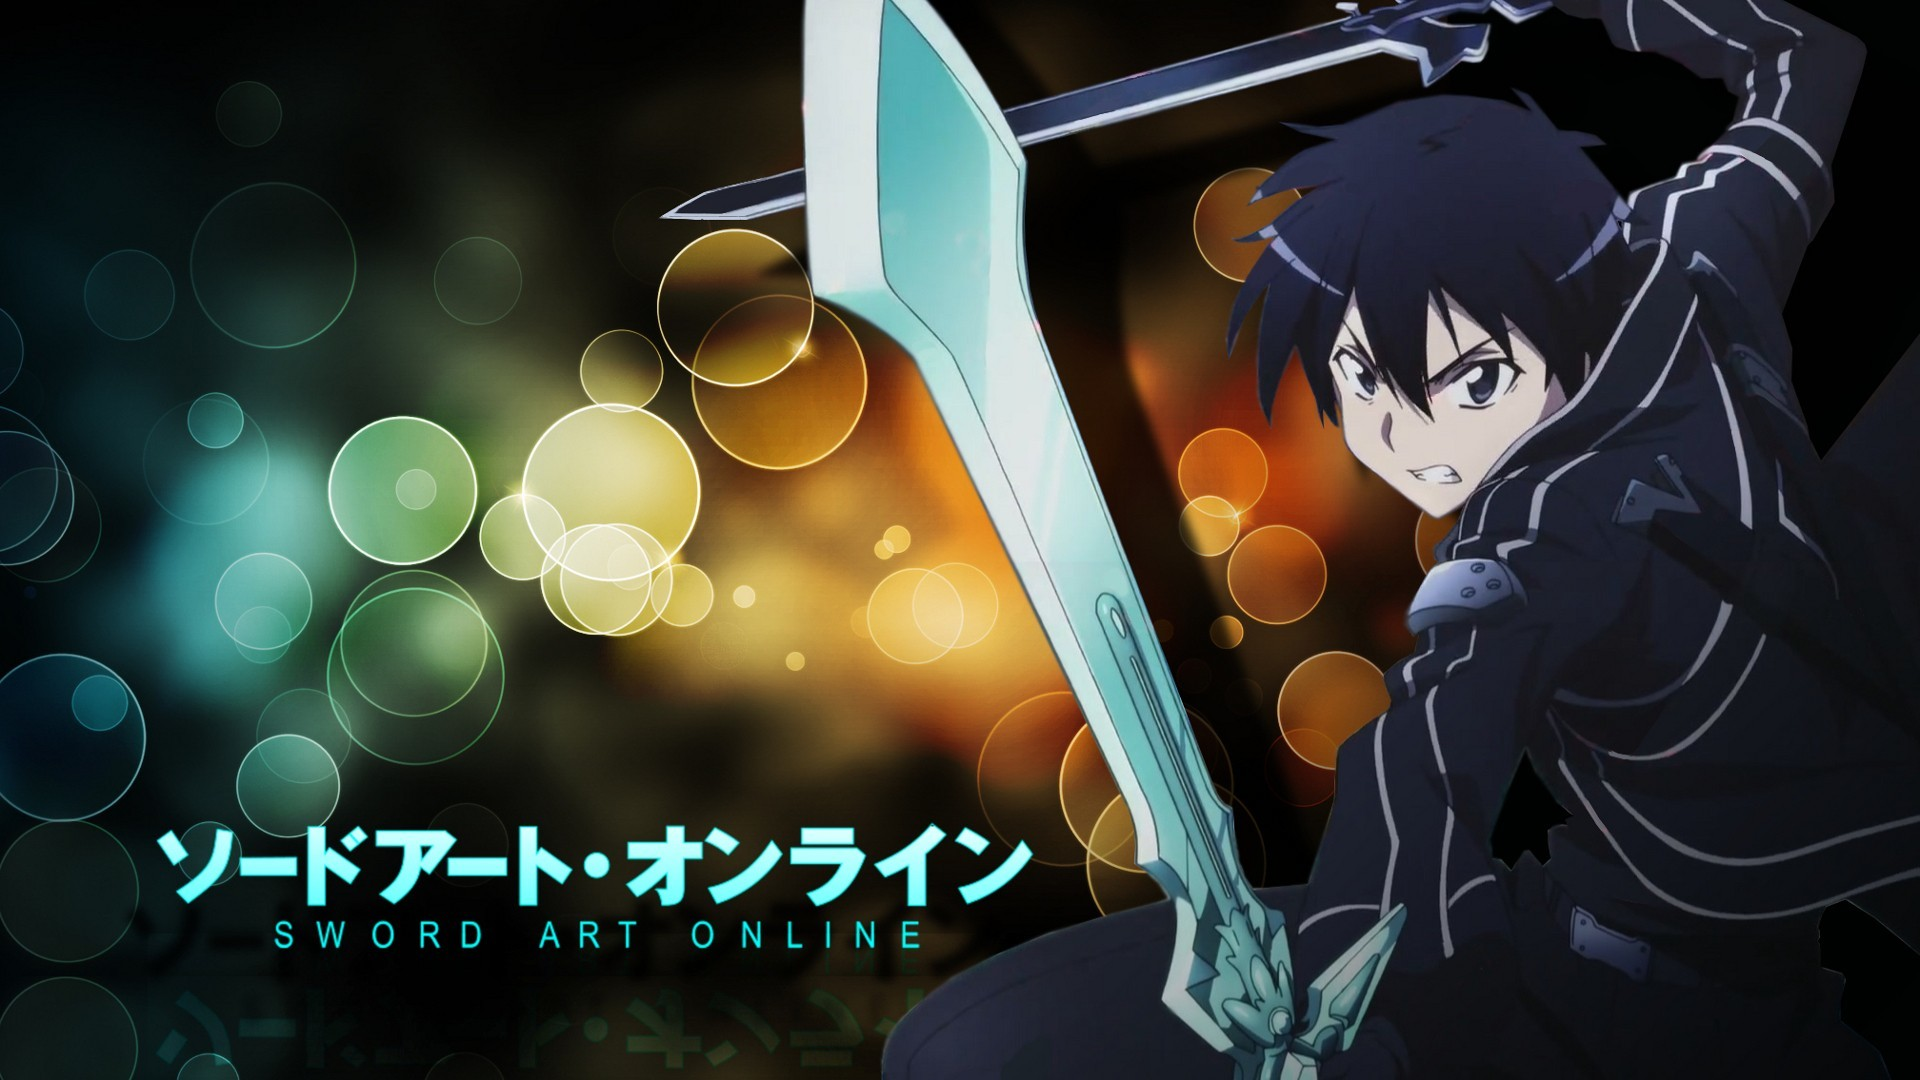 1920x1080 Sword Art Online Computer Wallpapers, Desktop Backgrounds |  .